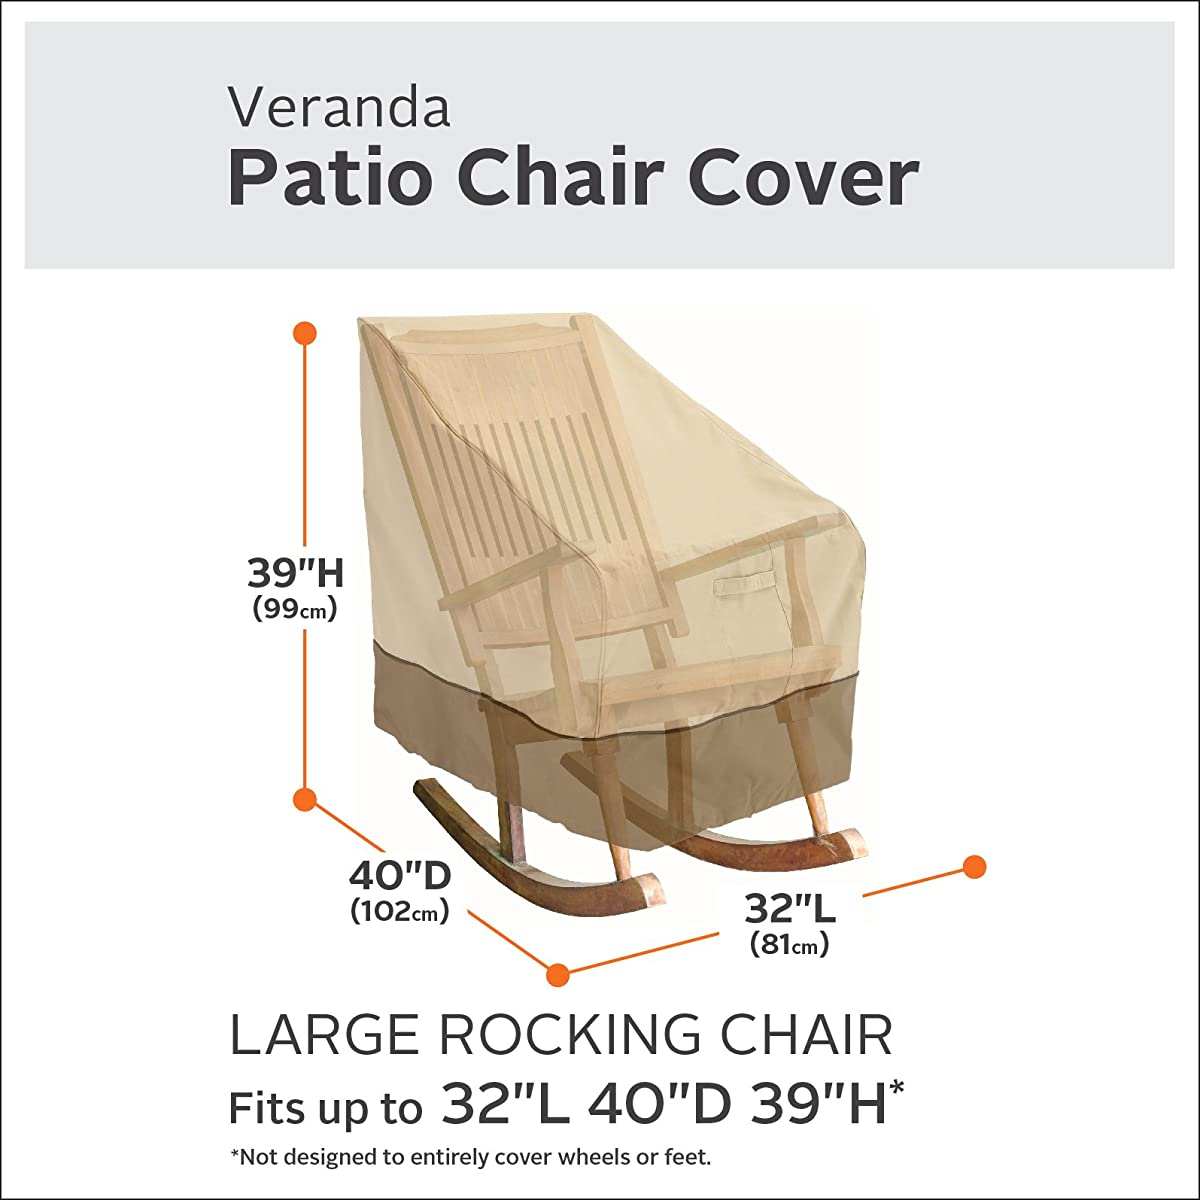 Classic Accessories Veranda Patio Rocking Chair Cover - Durable and Water Resistant Patio Set Cover, Large (55-624-011501-00)